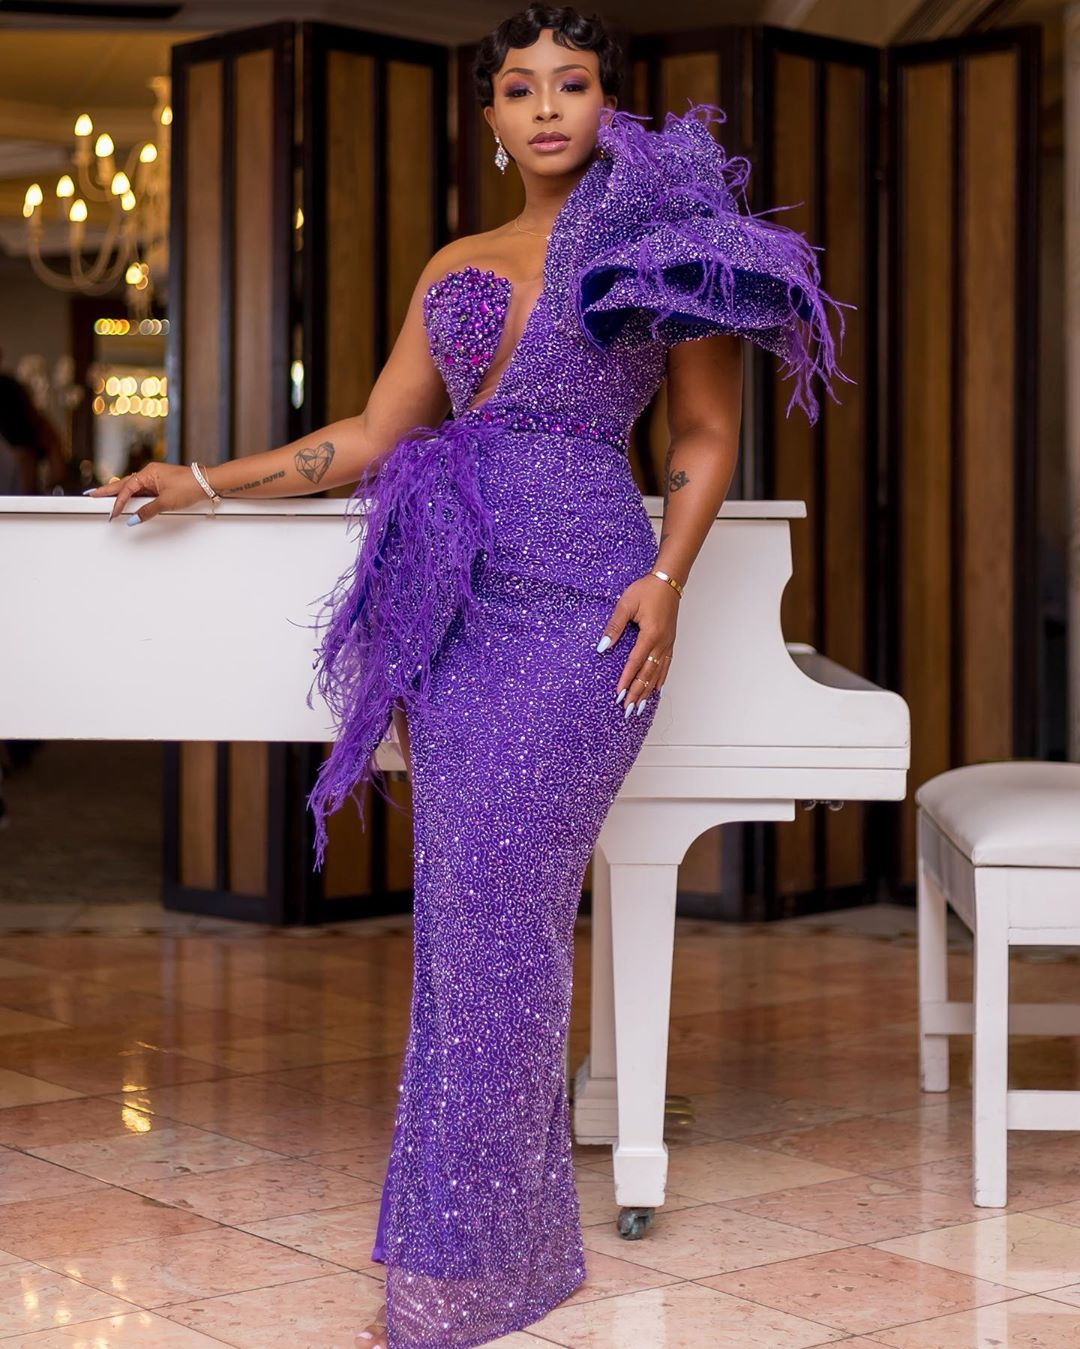 Boity Thulo's Orapeleng Modutle Look At Vodacom Durban July 2019 Was A Whole Mood